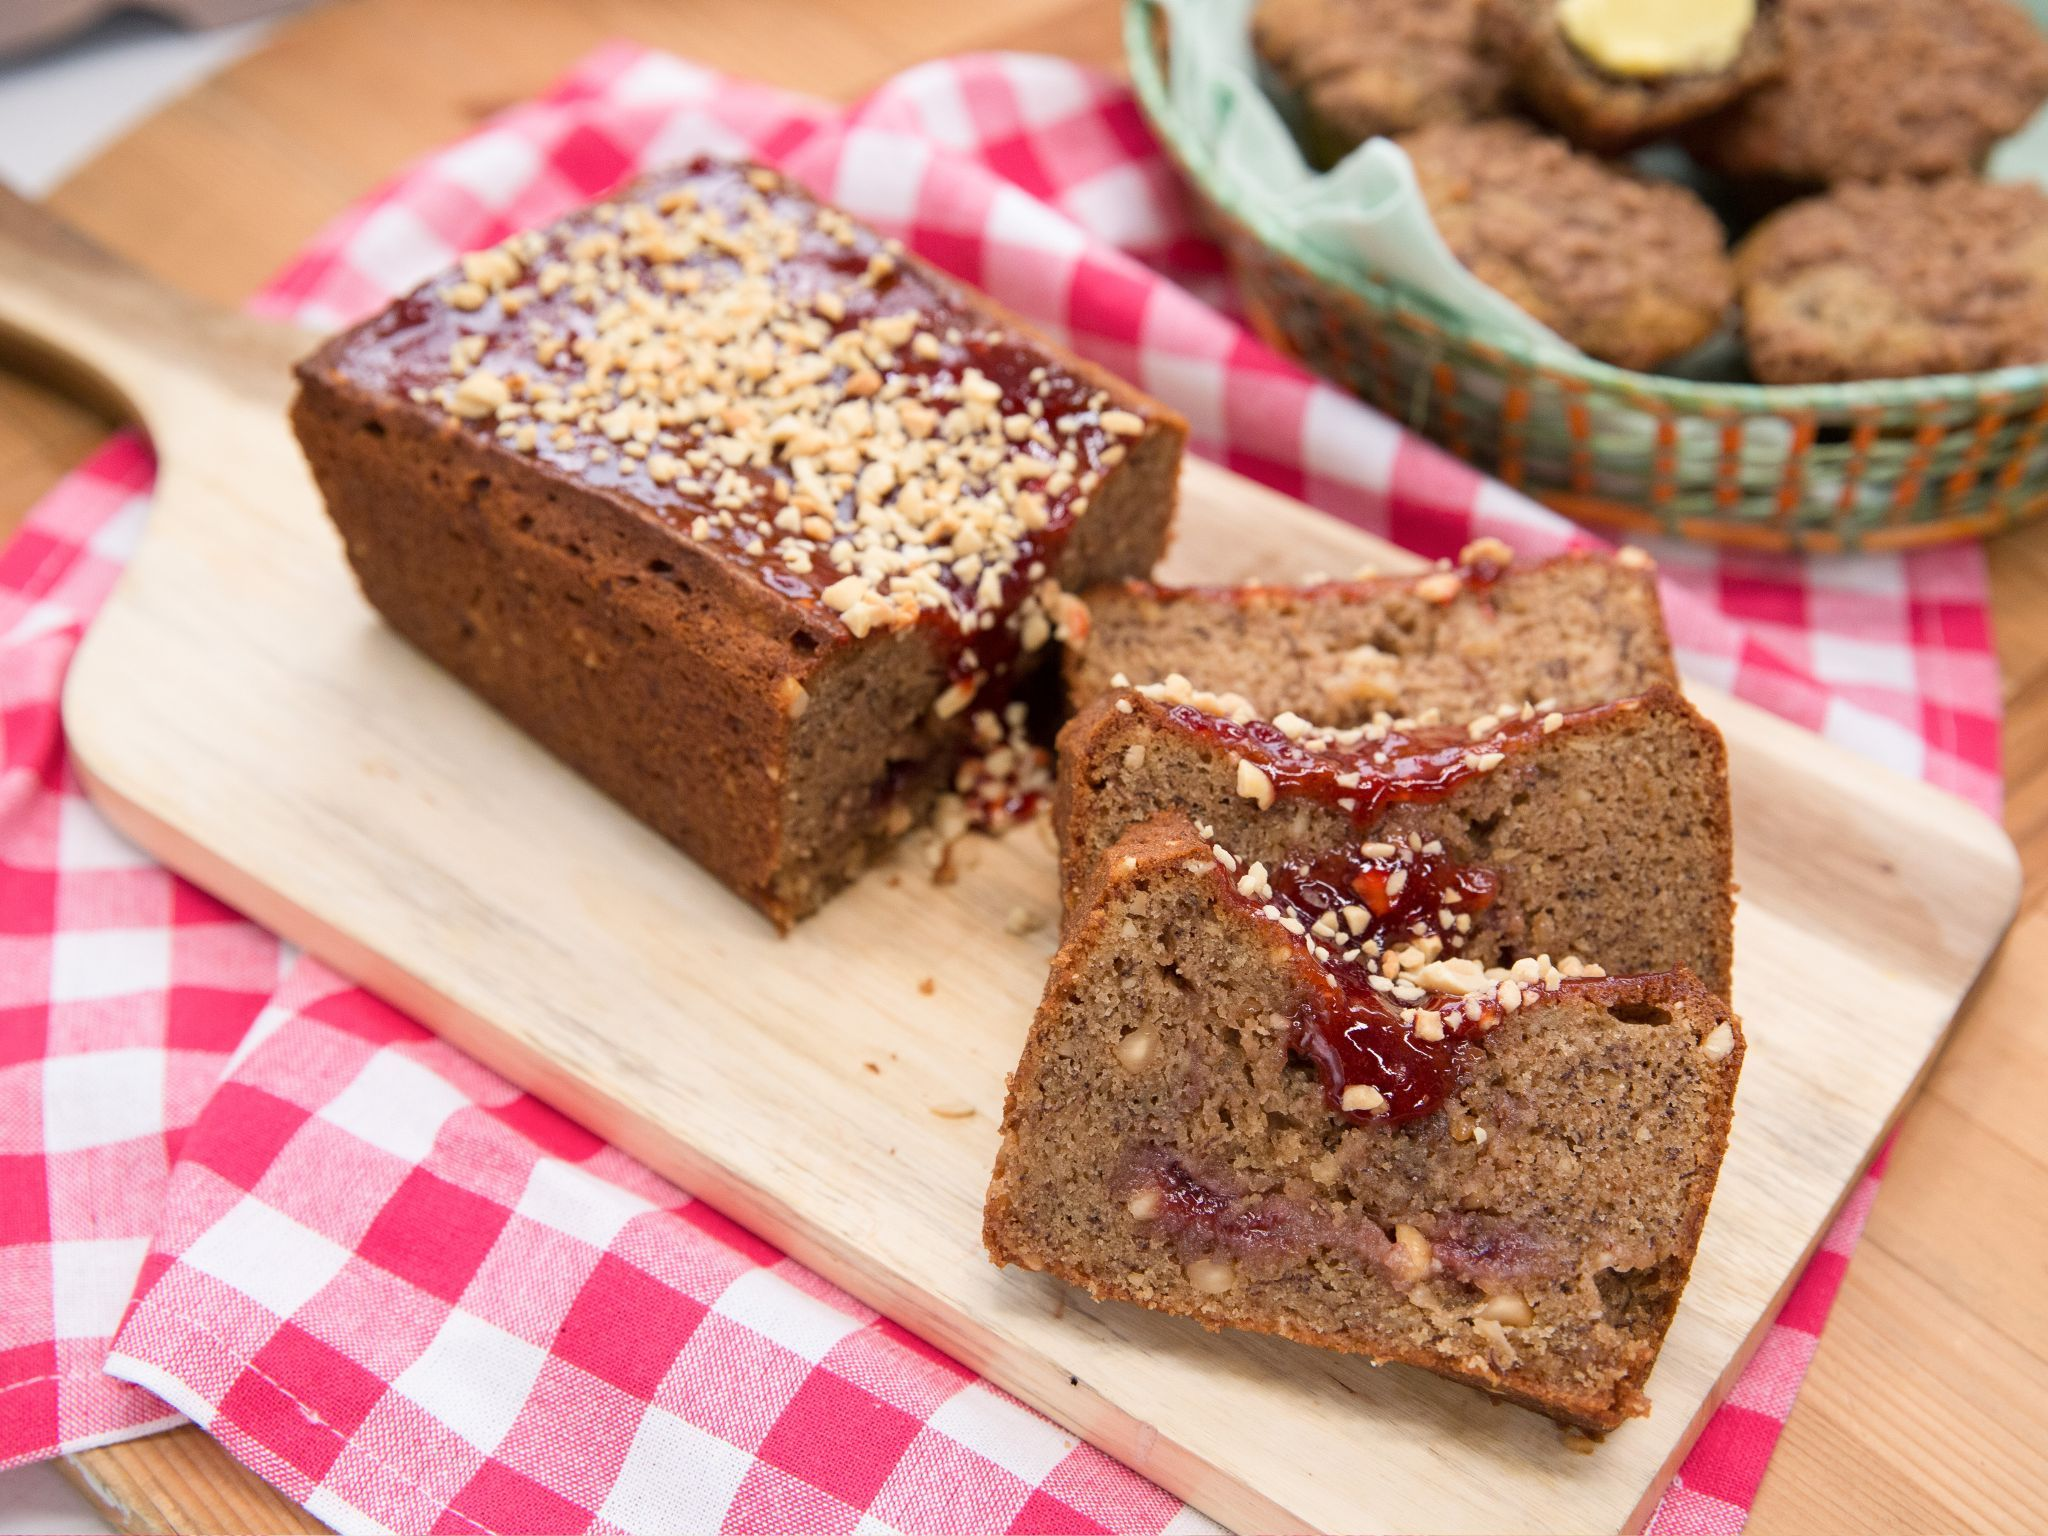 Peanut butter and jelly banana bread recipe banana bread peanut butter and jelly banana bread forumfinder Image collections